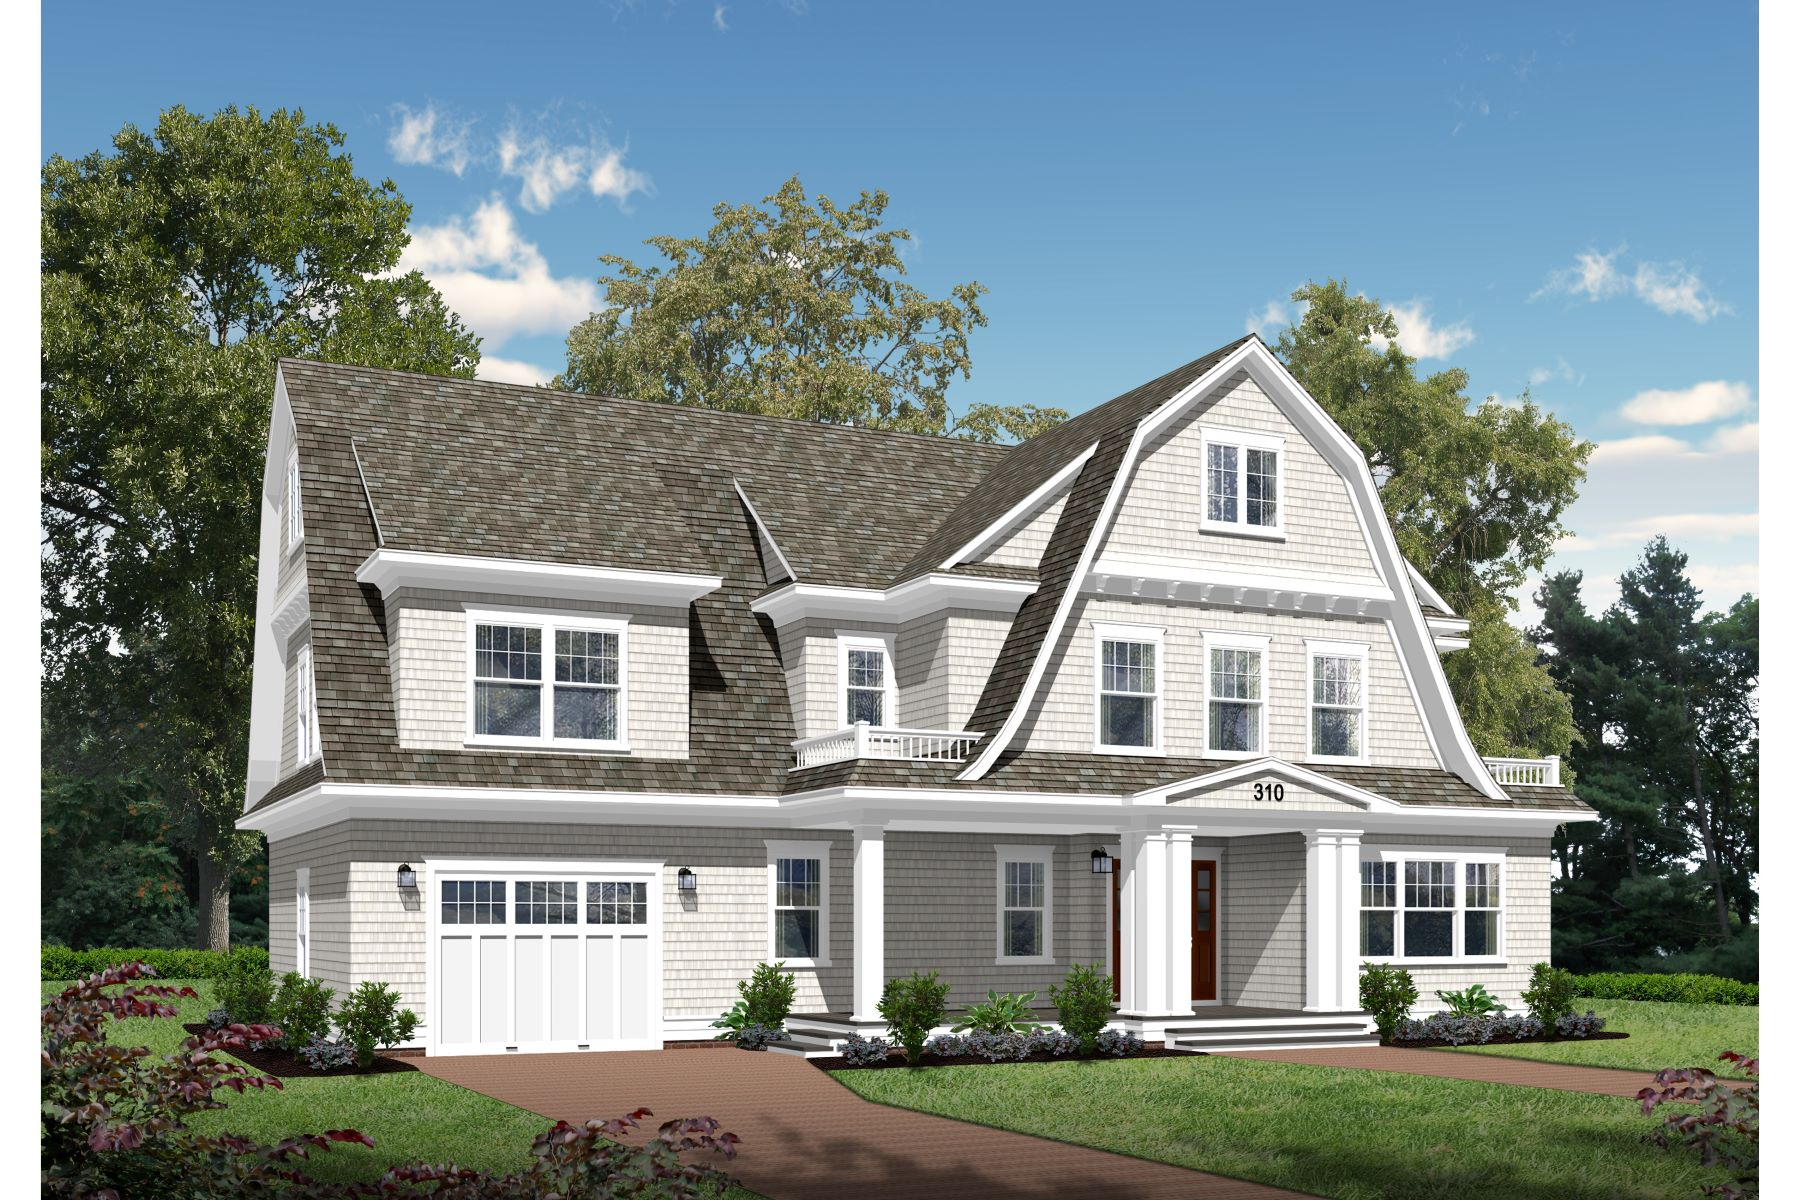 Casa Unifamiliar por un Venta en Newly Constructed Shore Colonial 310 Beacon Blvd Sea Girt, Nueva Jersey 08750 Estados Unidos